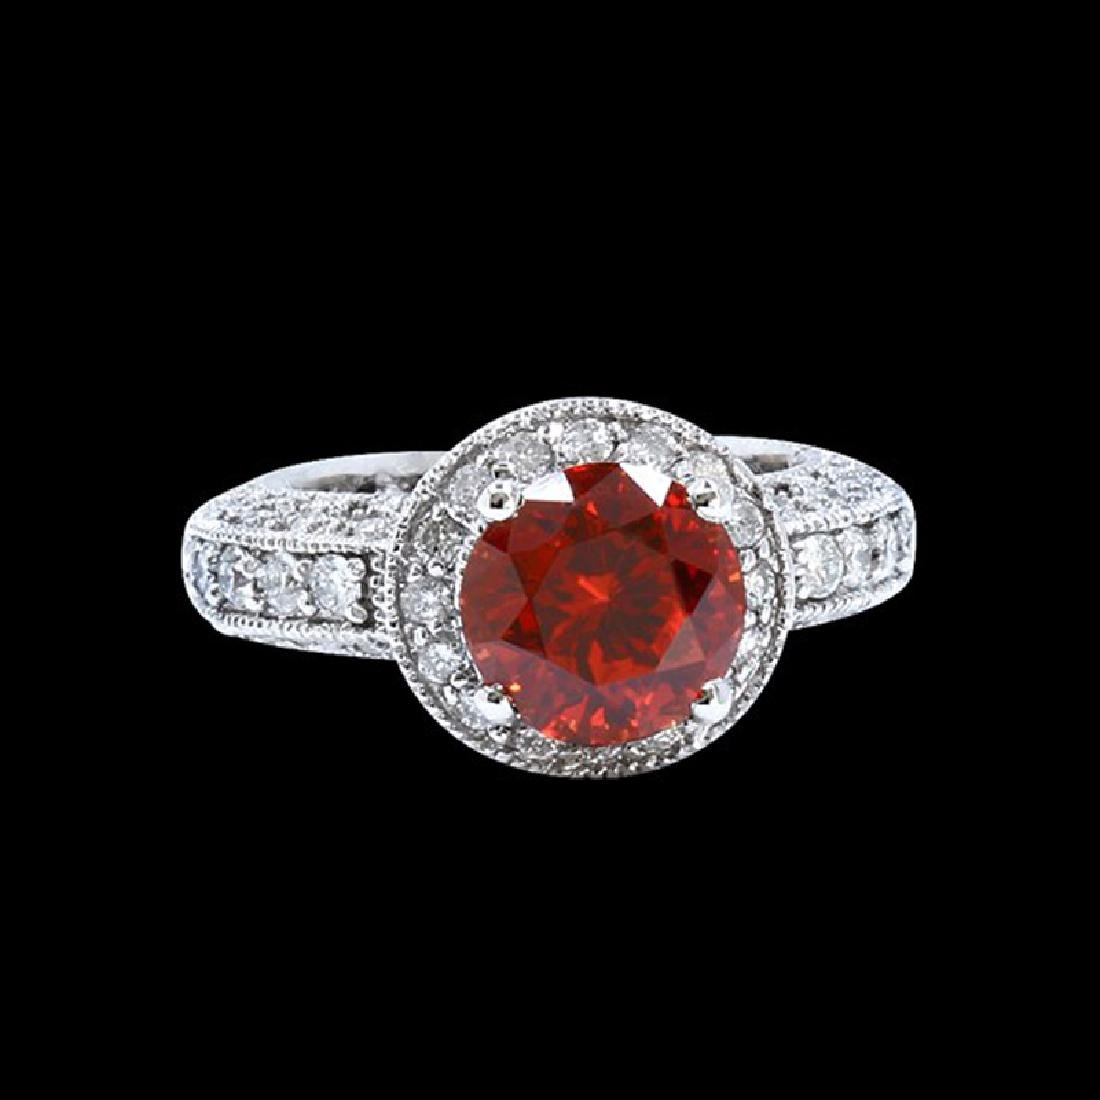 3.90CT NATURAL MALAYA GARNET 18K W/G RING